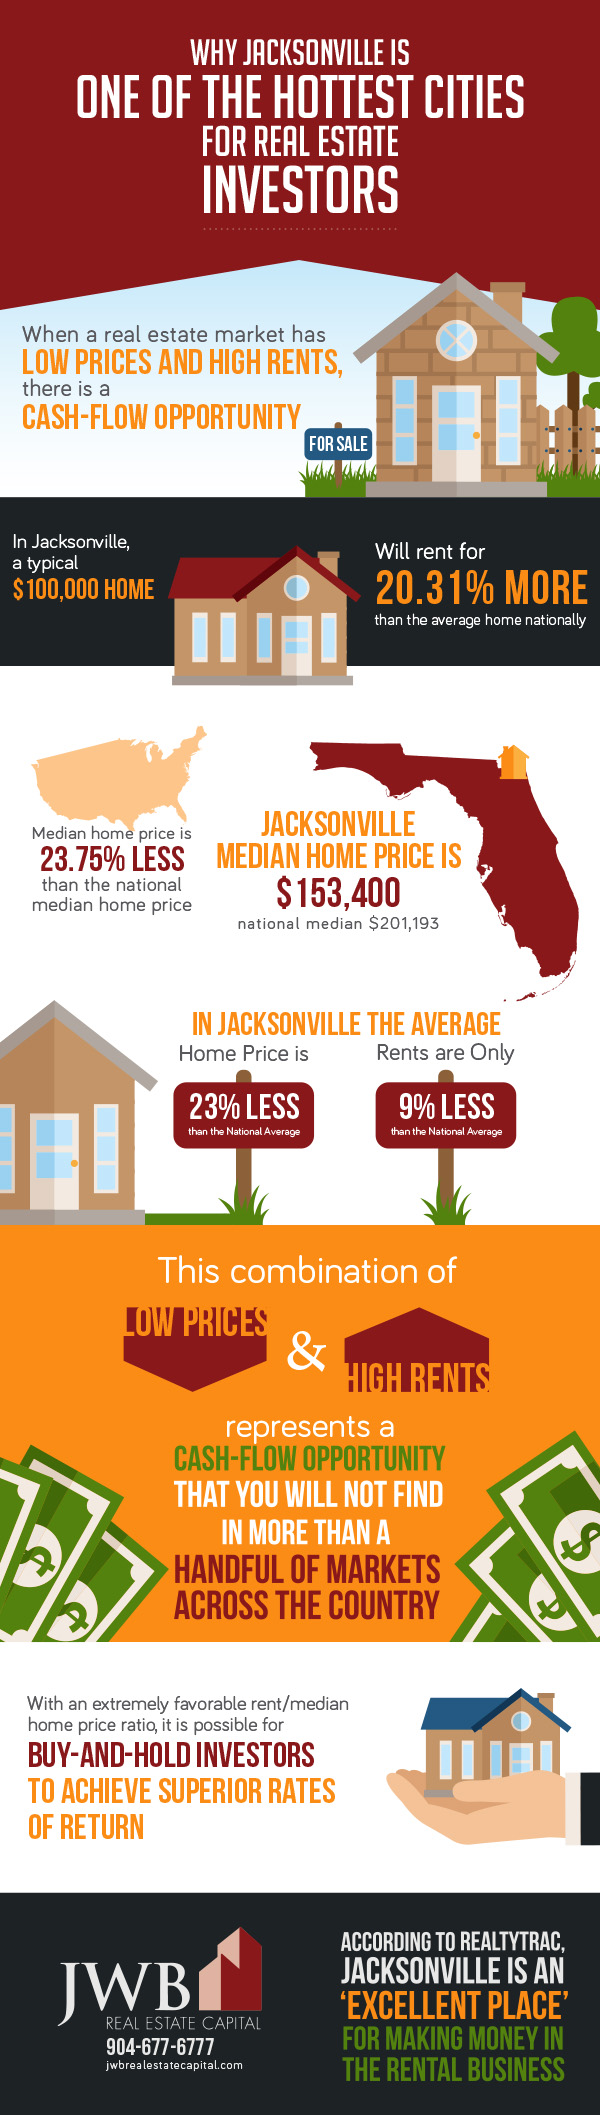 Jacksonville Property Investment Opportunity